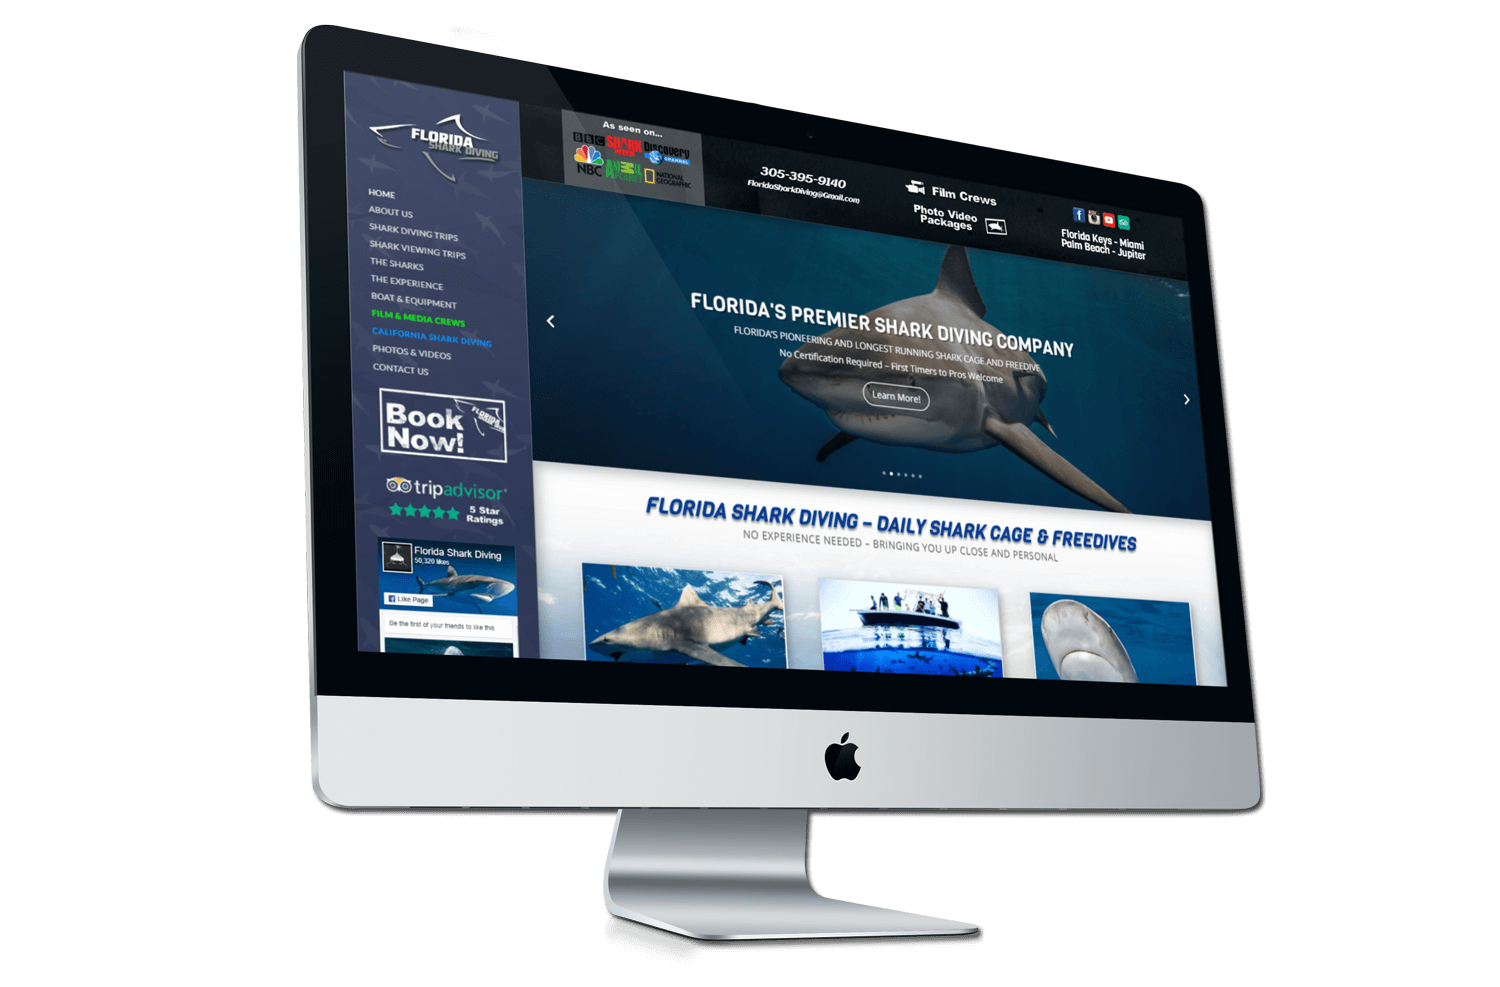 An image of the newly redesigned Florida Shark Diving website created by Not Fad